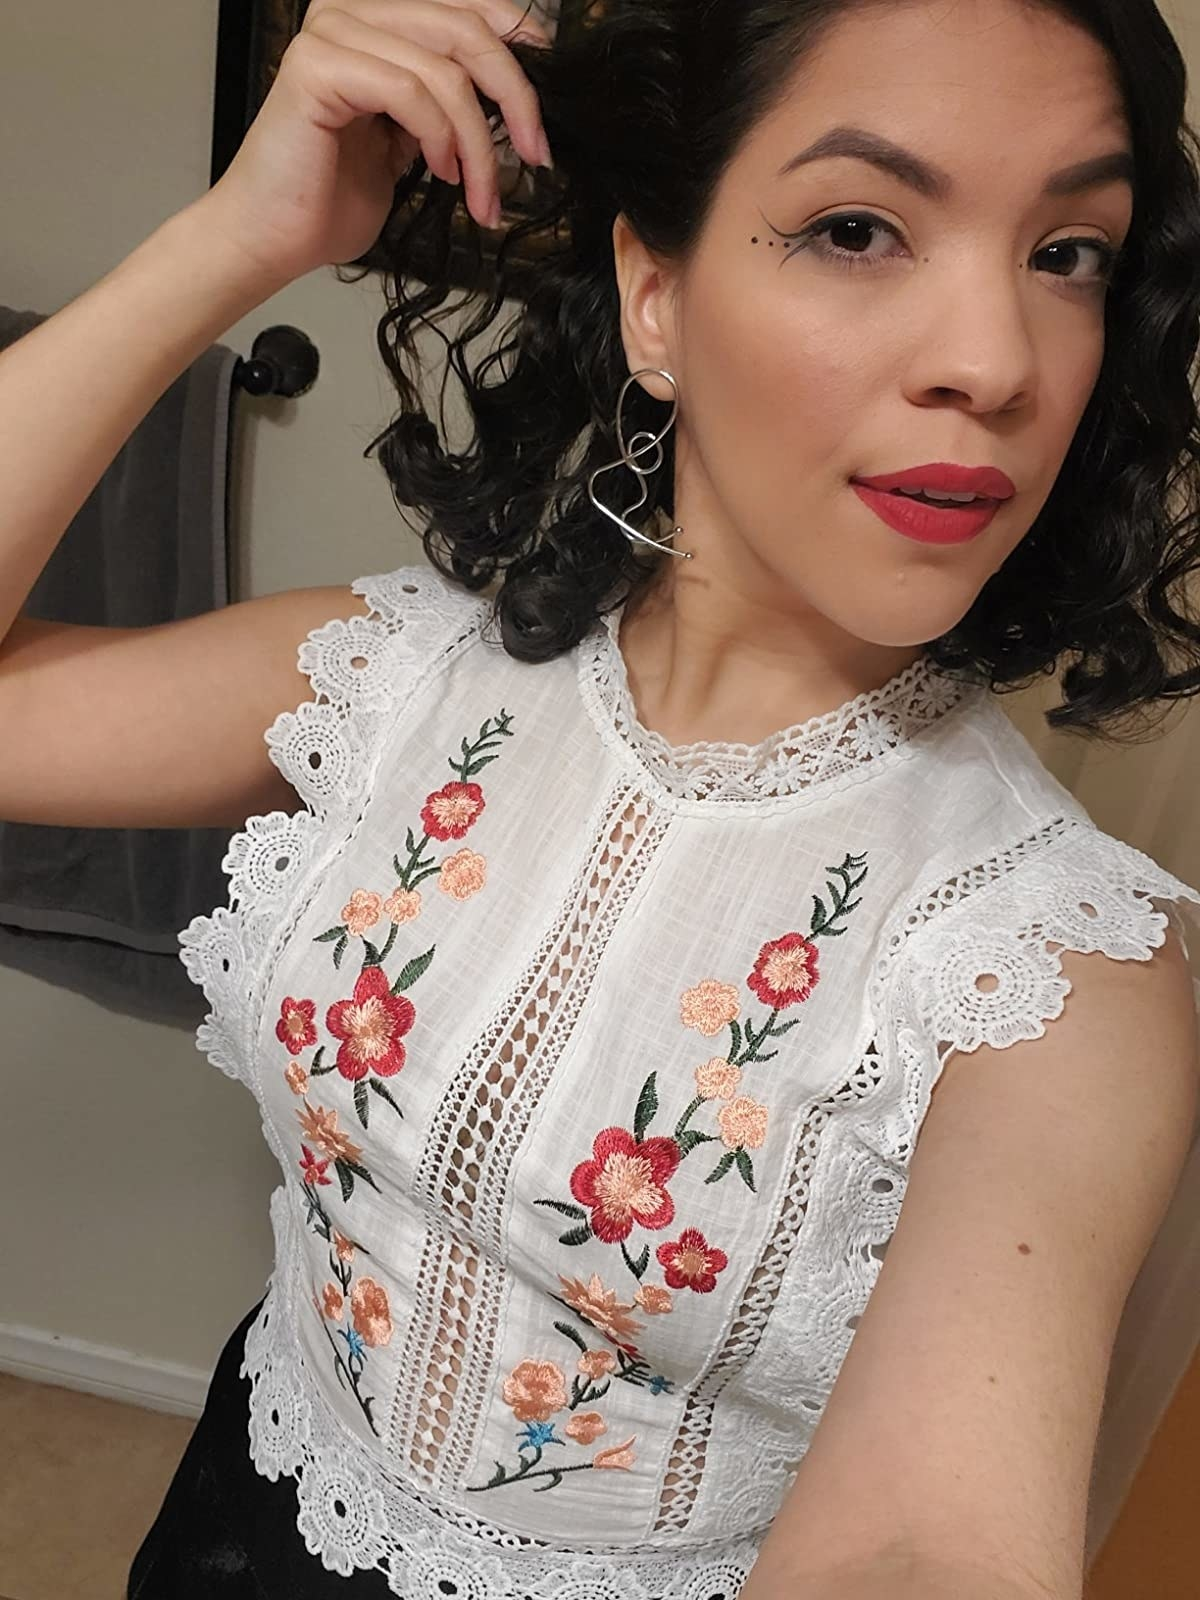 reviewer wearing the embroidered top